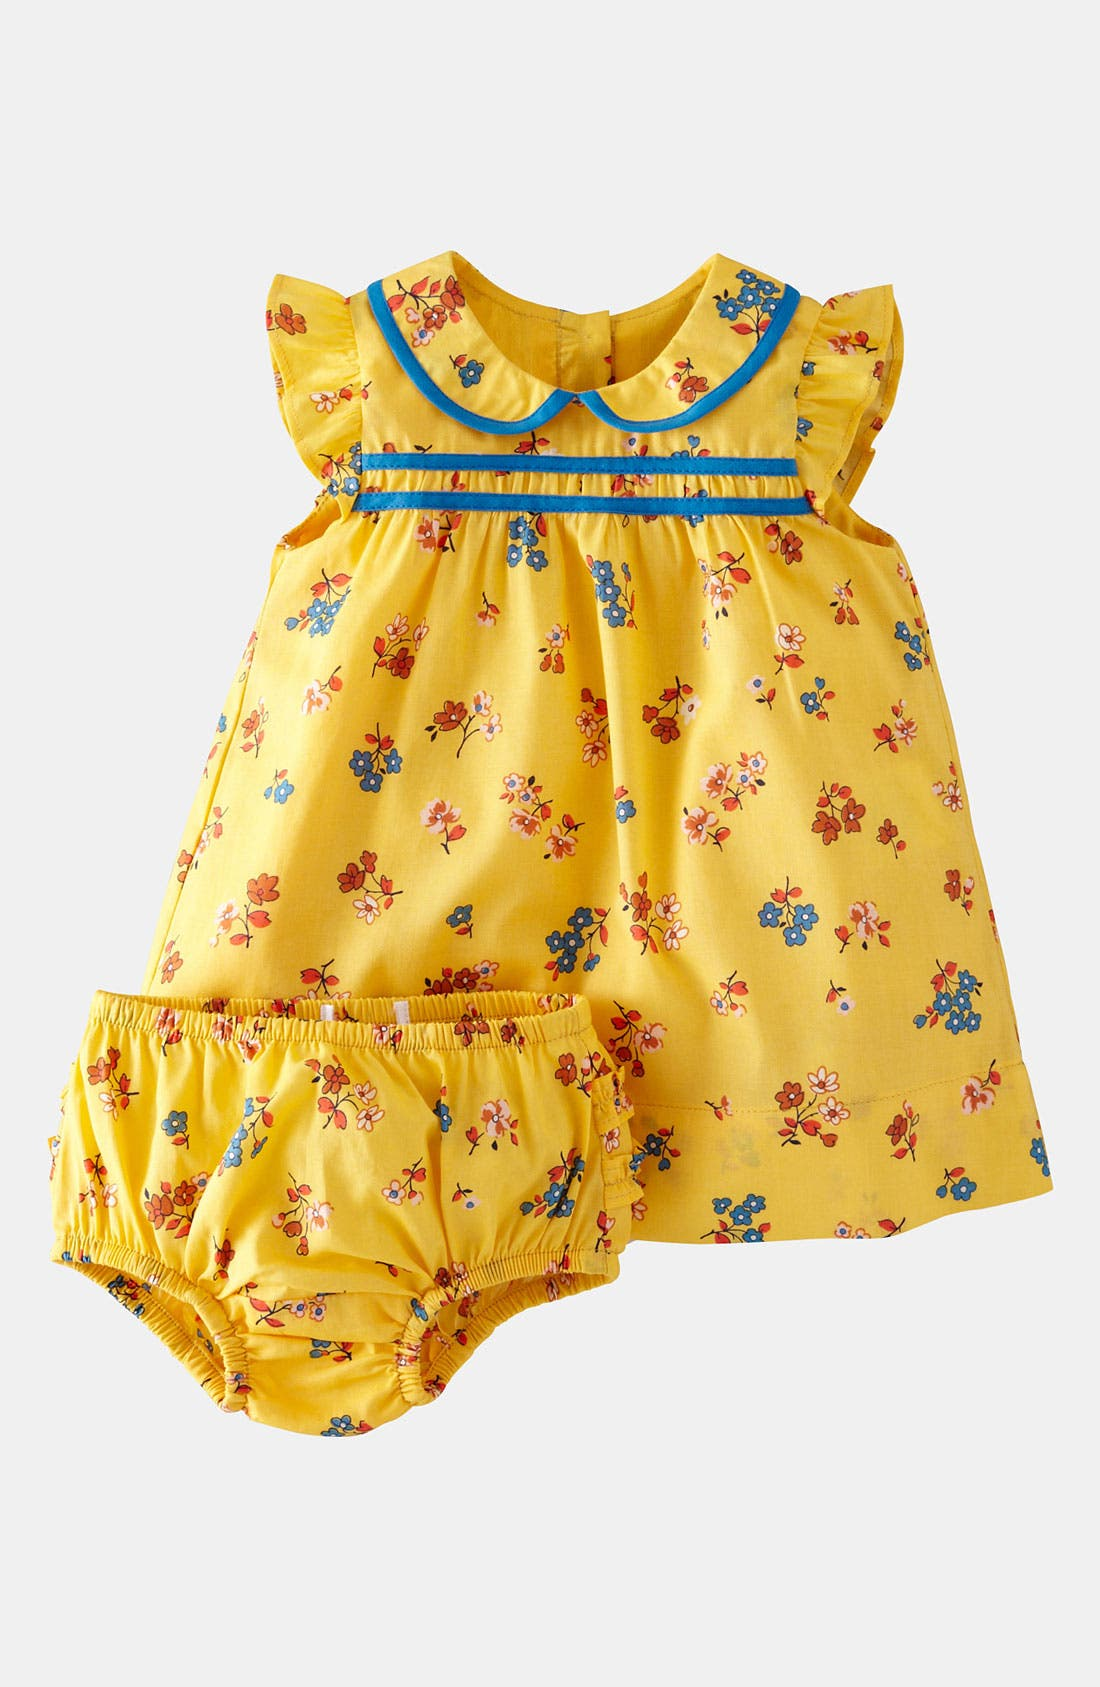 Alternate Image 1 Selected - Mini Boden 'Pretty Tea' Dress & Bloomers (Infant)